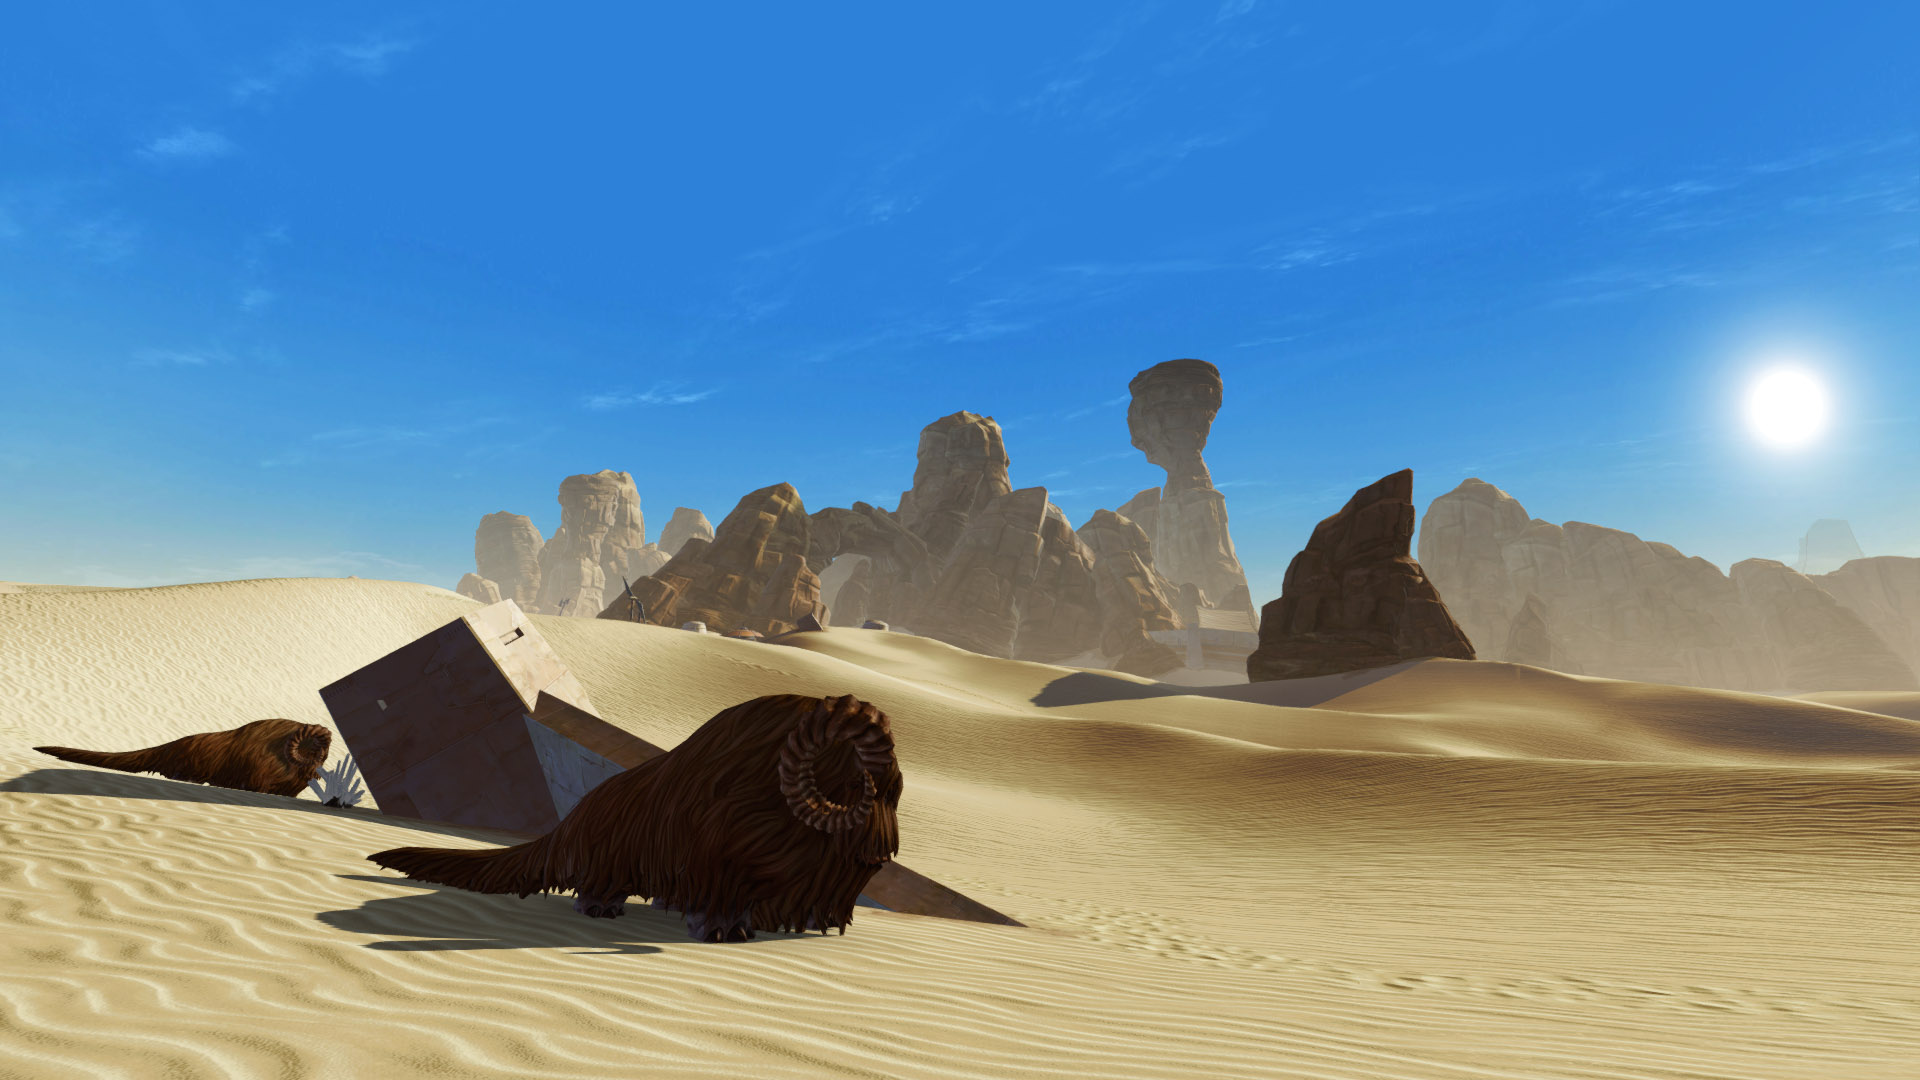 SWTOR screenshot with the landscape of Tatooine: a desert with rocks in the distance and one of the suns in the clear blue sky. Two banthas roam in the foreground.